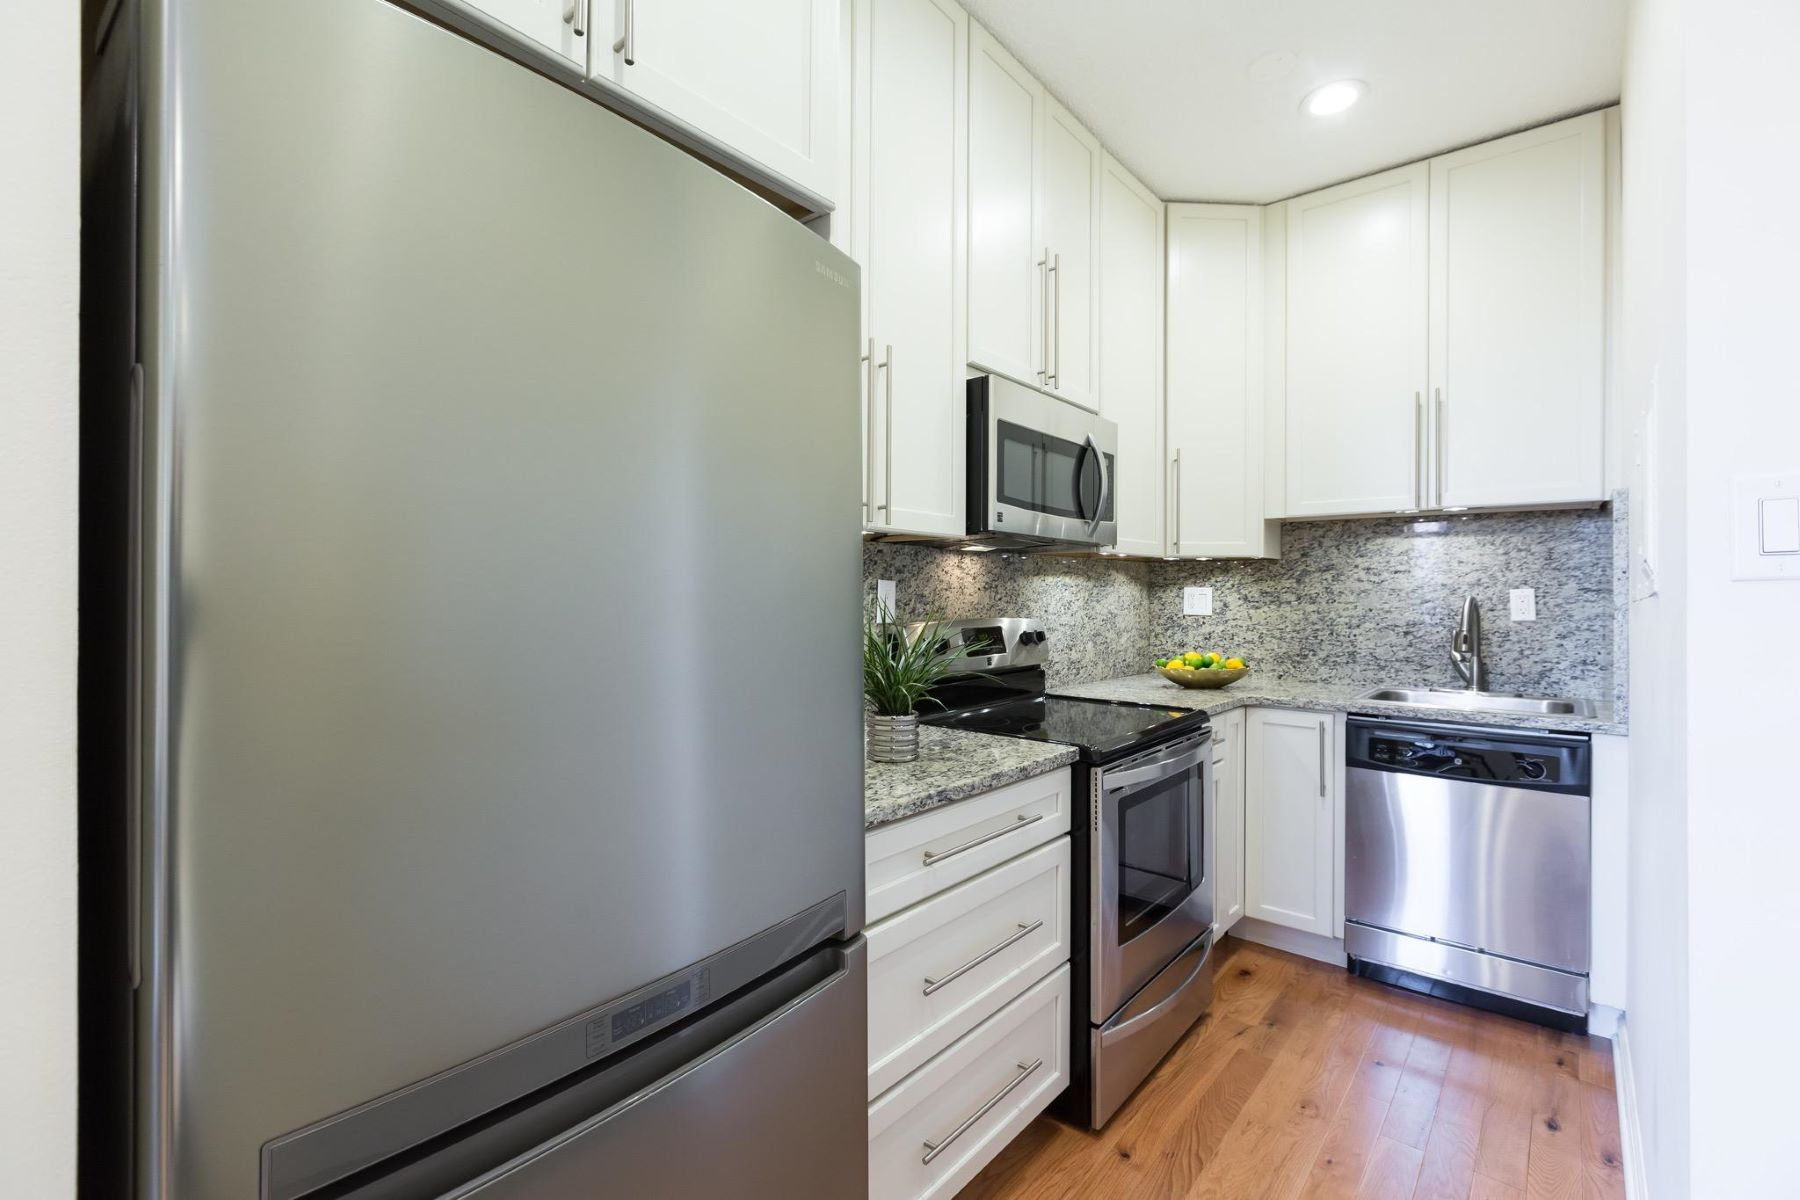 Additional photo for property listing at 1615 Q St Nw #207 1615 Q St Nw #207 Washington, District Of Columbia 20009 United States